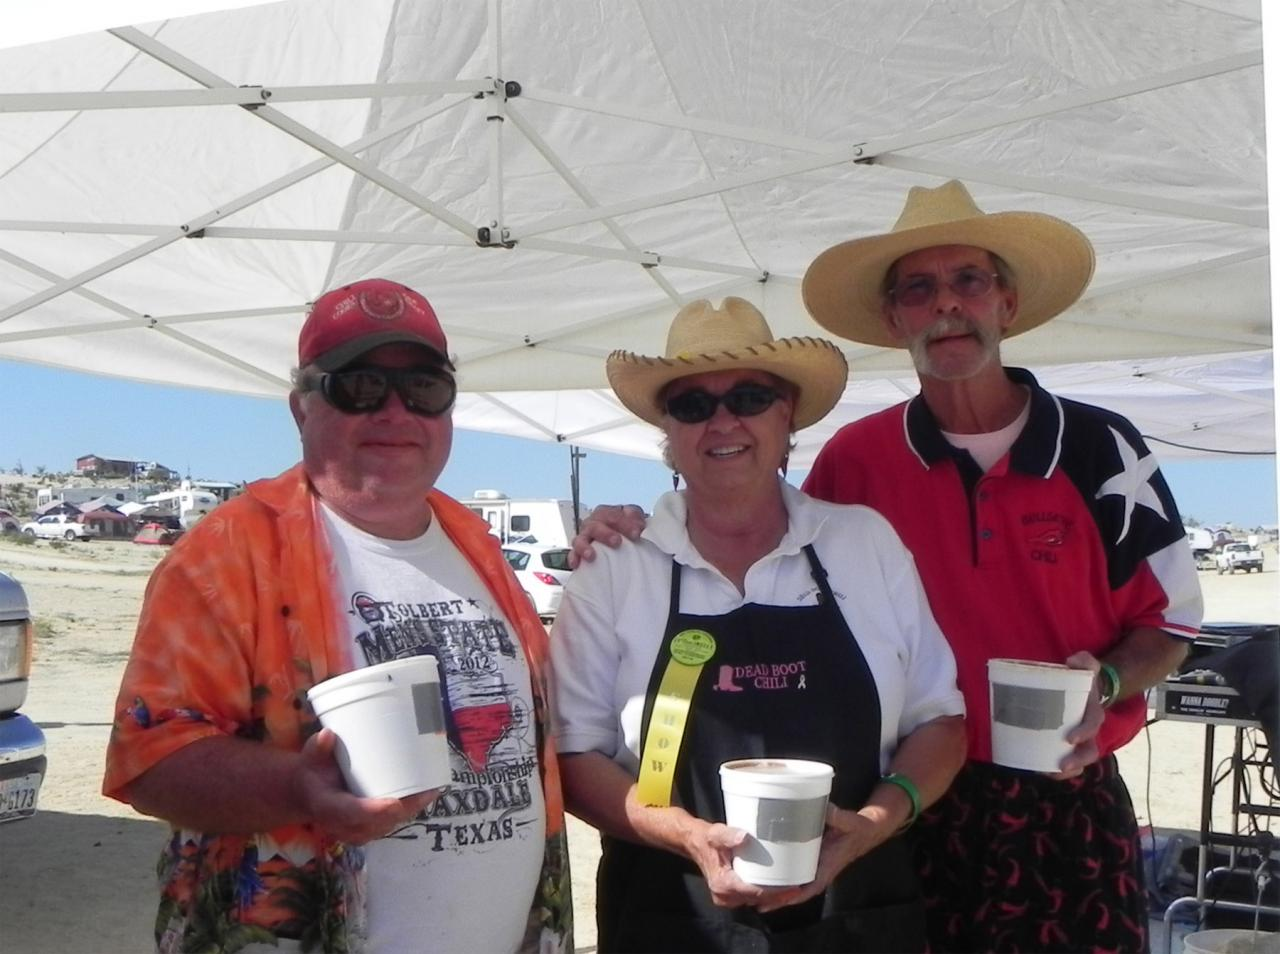 Central Texas Tolbert Chili Group